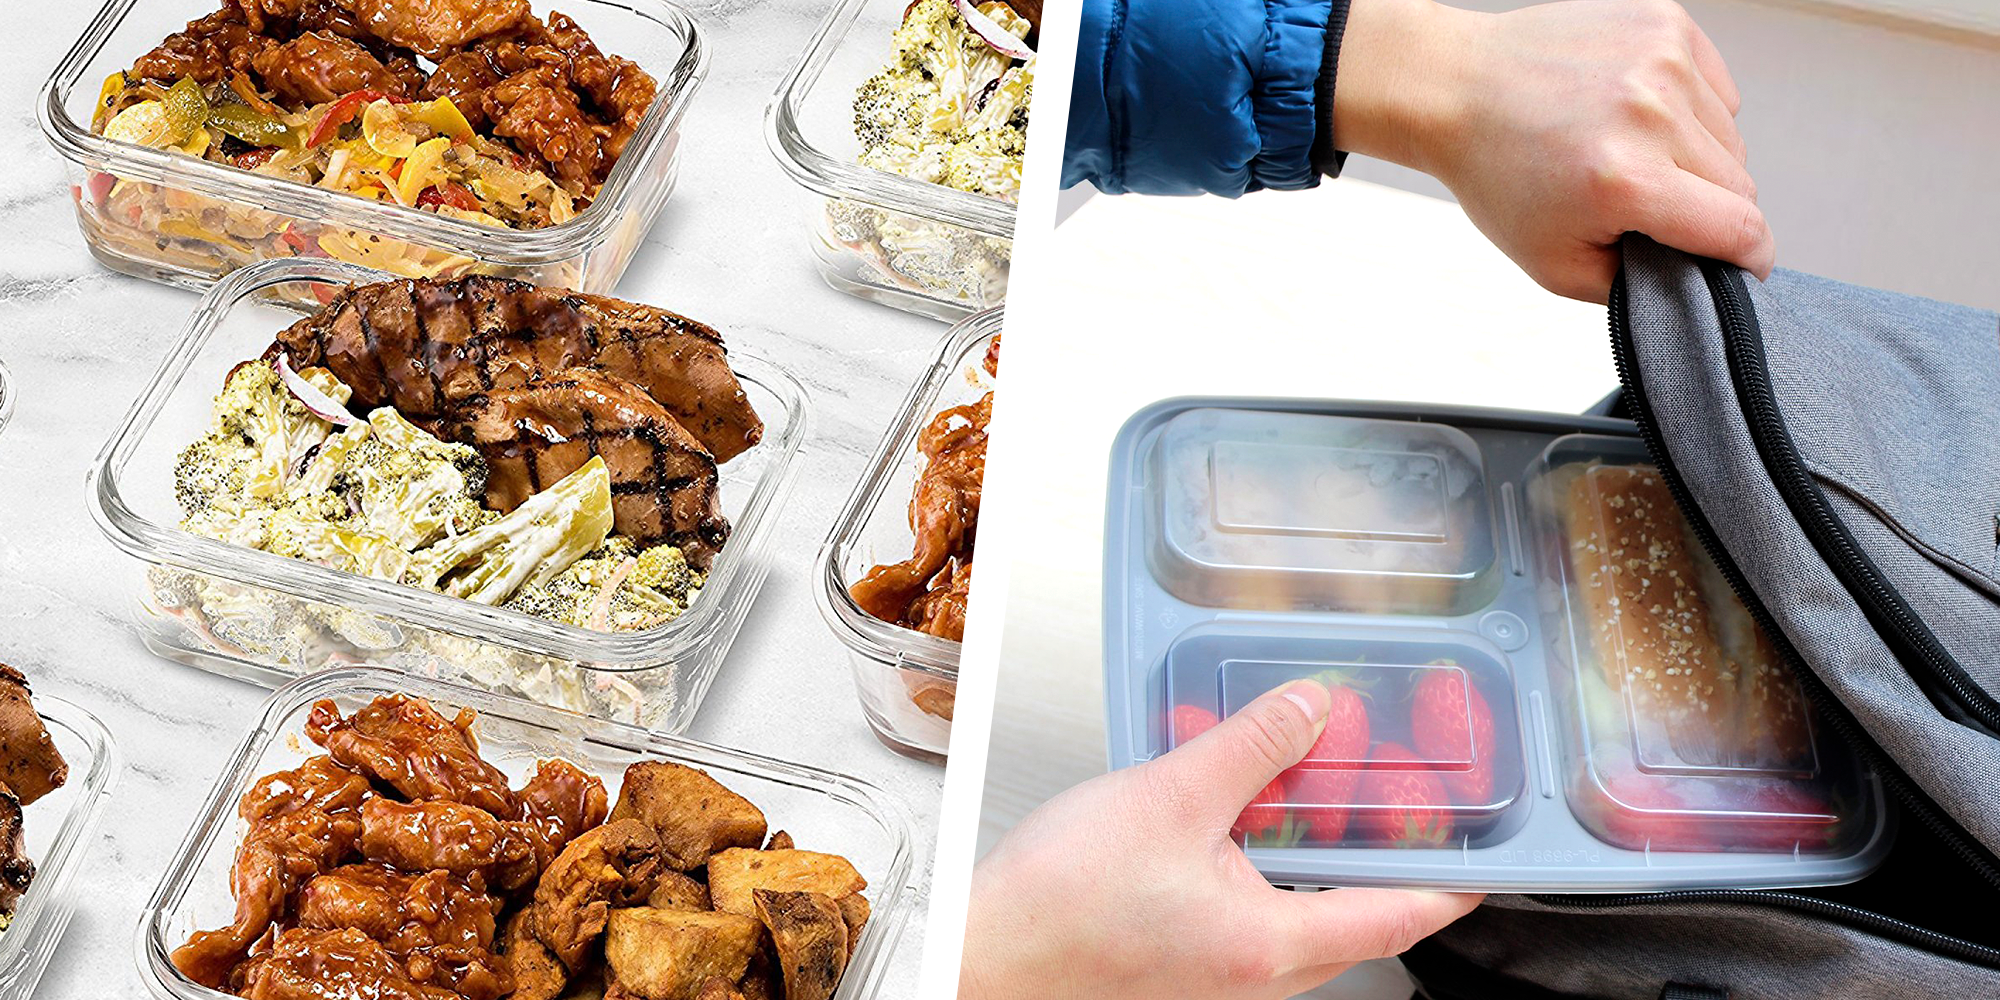 The 10 Best Meal Prep Containers for Keeping Food Fresh